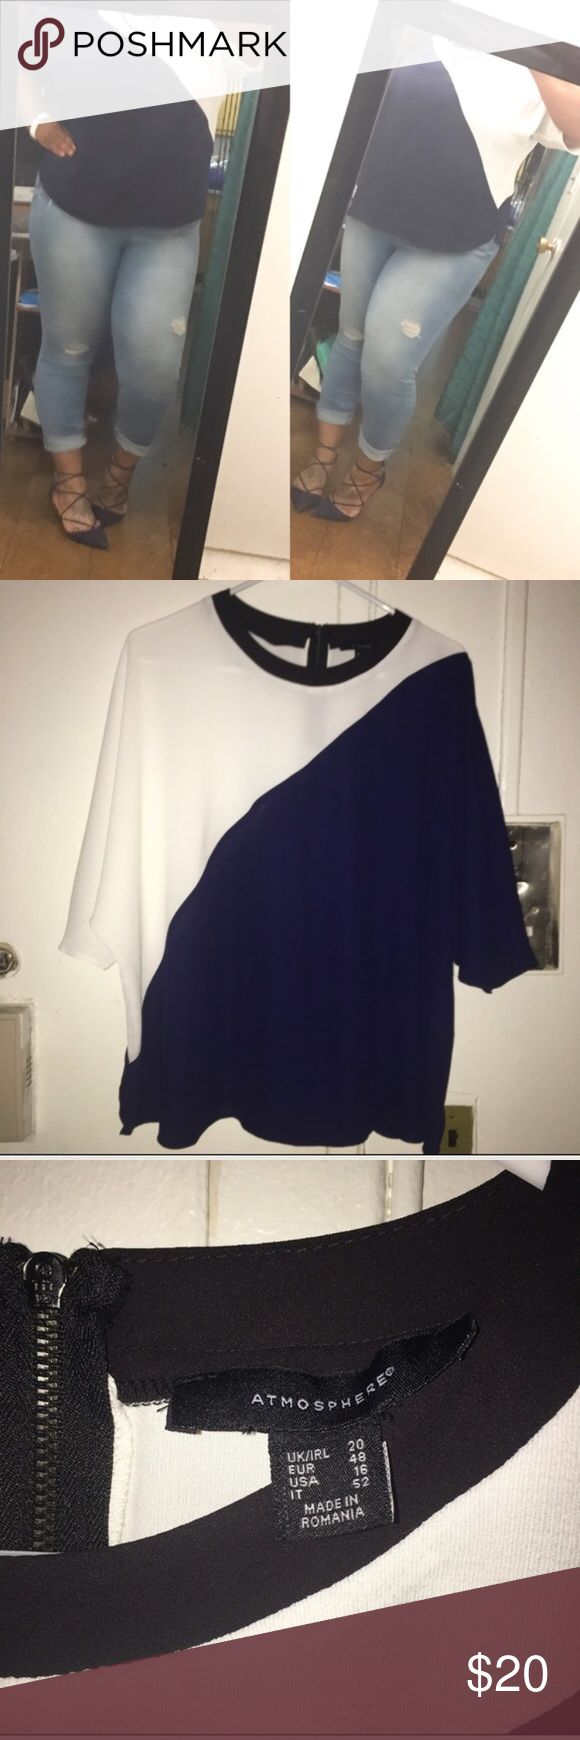 🆕 Beautiful Primark U.K Color-block Dress Top ✅ASK 4 BUNDLE DISCOUNT🚫NO LOWEST🚫NO TRADES. NWOT. Paid 40£. DISCLAIMER: Size says 16 USA, but it is actually a 2X (ME). I am a solid 2X & as you can see this fits fine with room to move around. Runs true to size, stretchable material,flows in front to conceal stomach, sleeve is elbow length (hide bat wings). Should definitely be dressed up. Questions welcomed. Primark U.K Tops Blouses